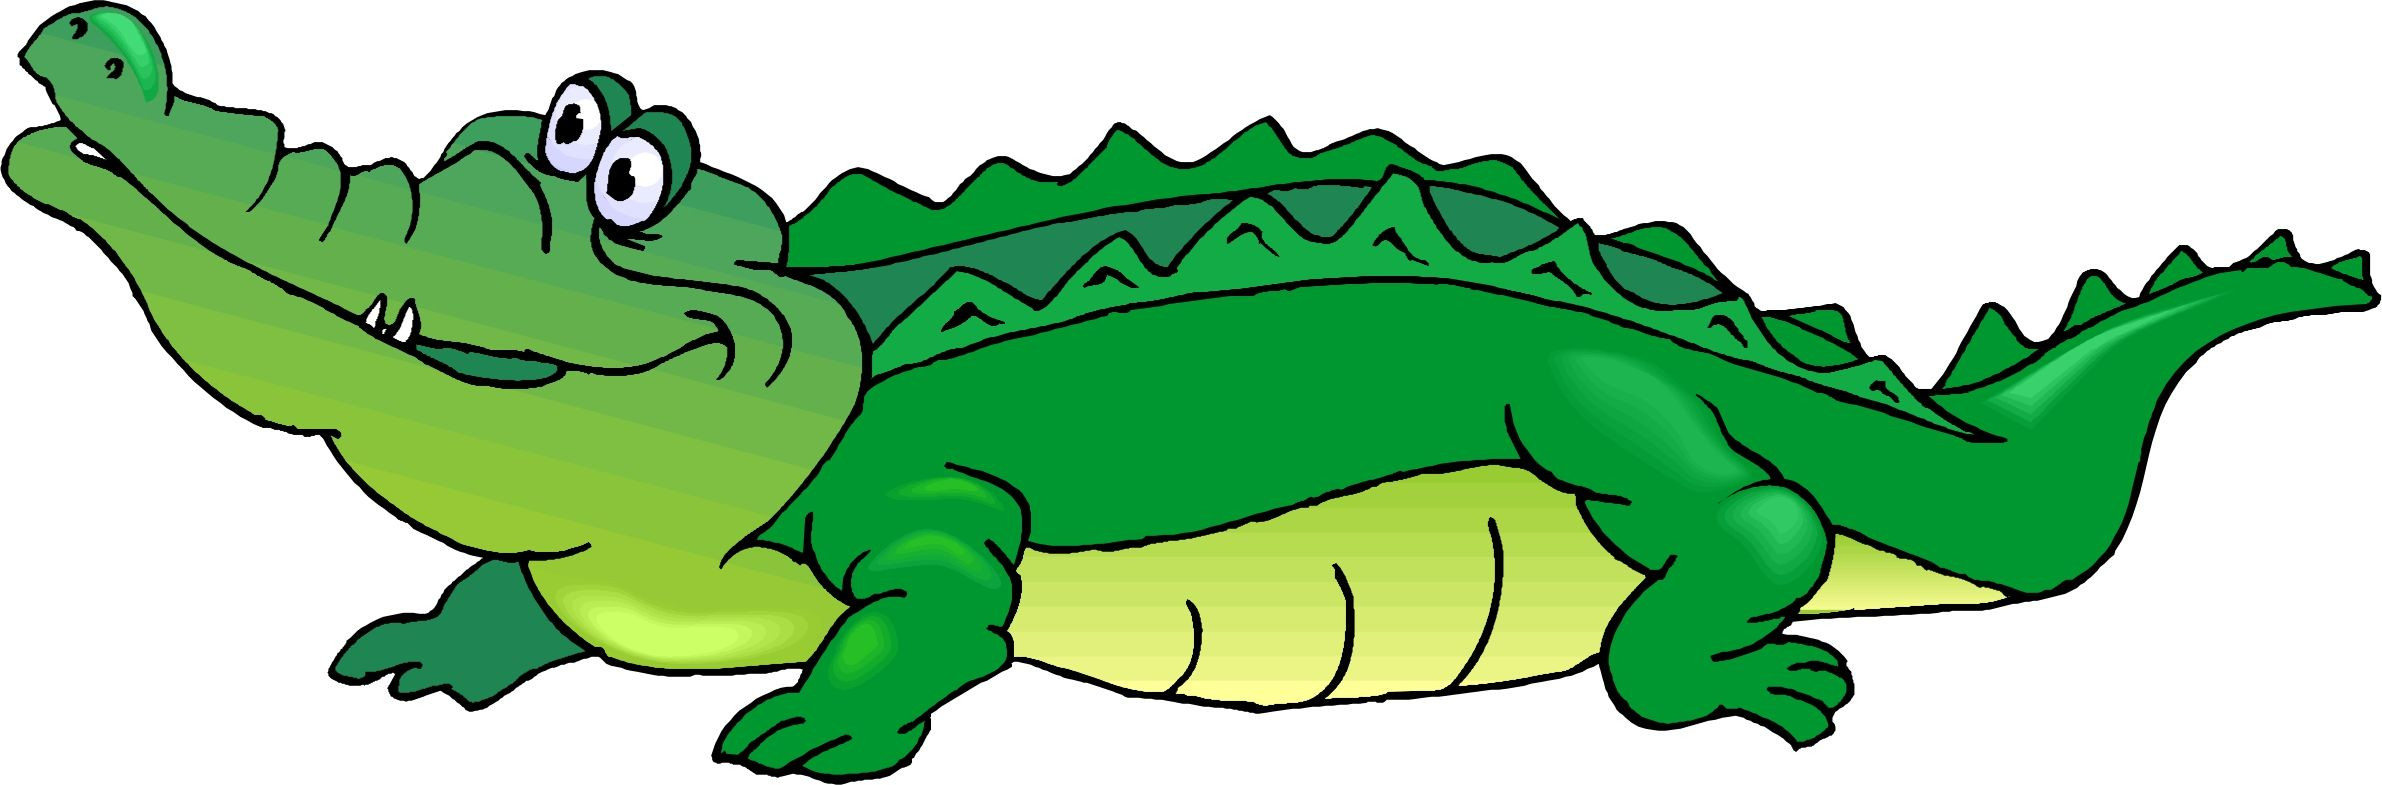 Gator in heartbeat clipart png Gator clipart good morning - 104 transparent clip arts, images and ... png